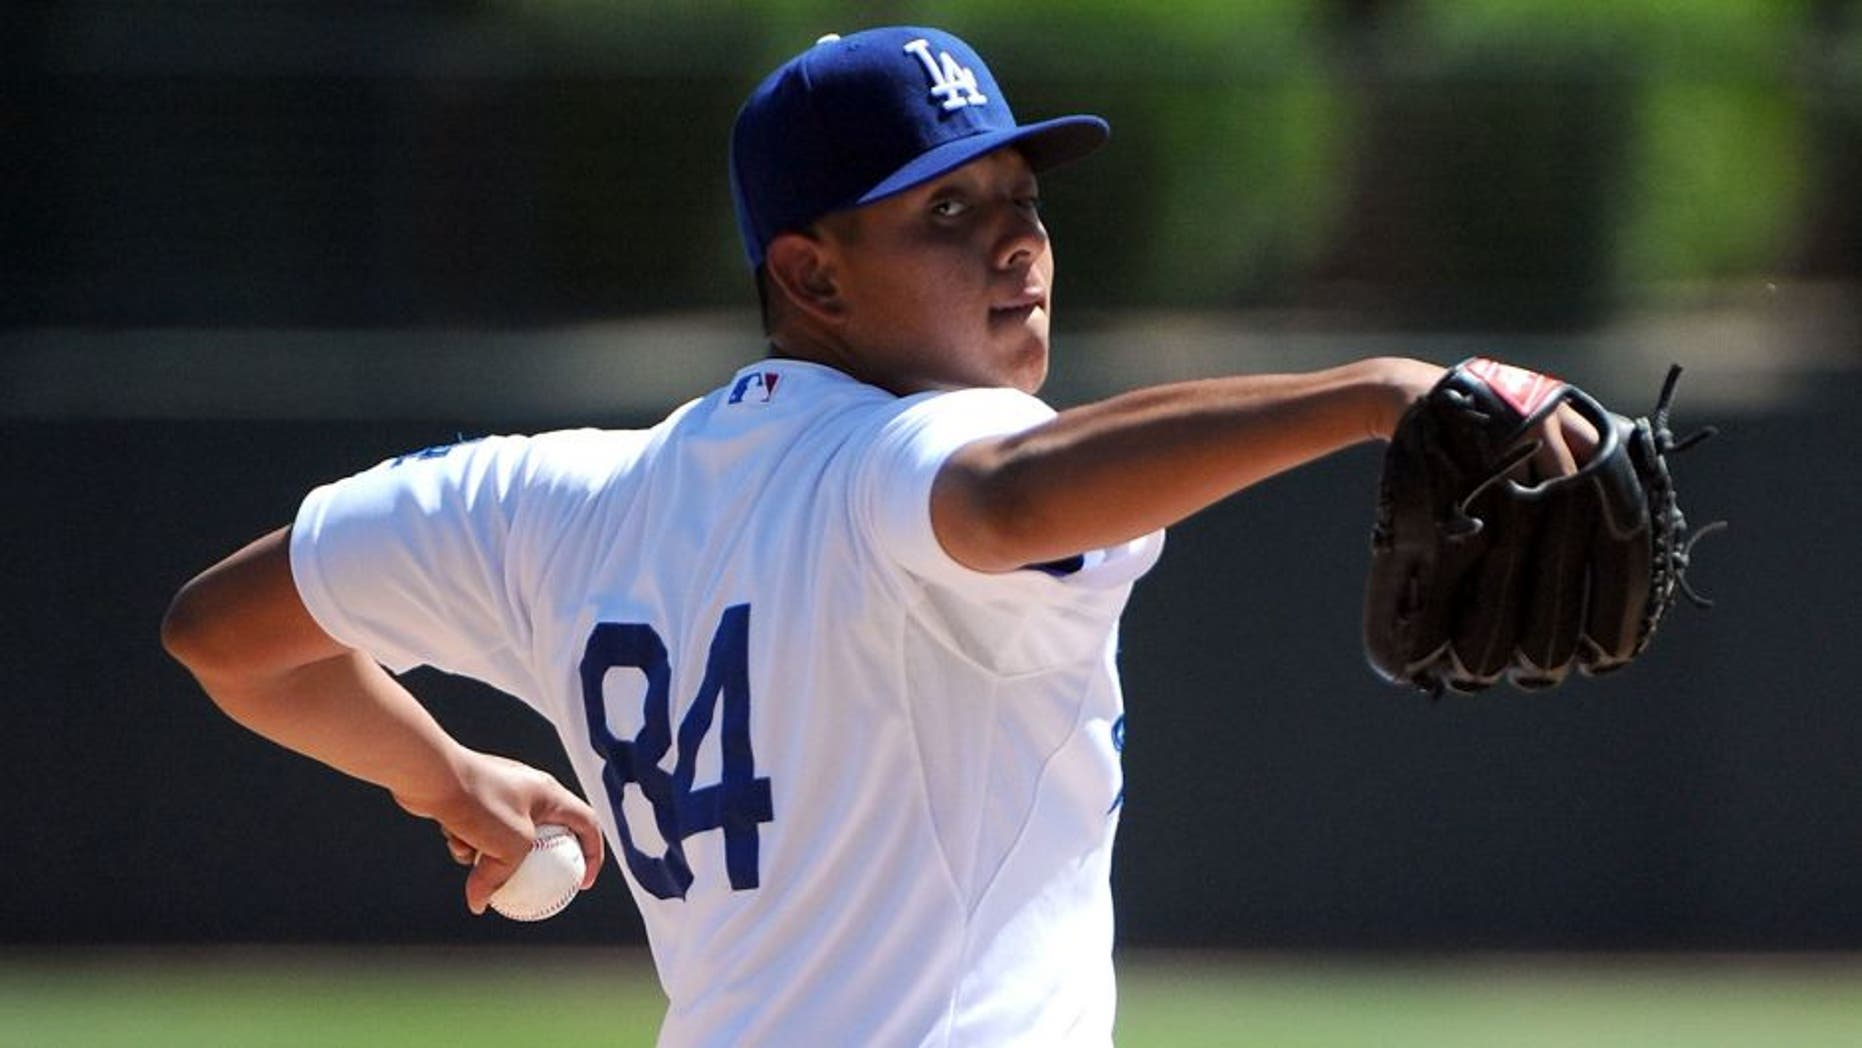 GLENDALE, AZ - MARCH 15: Julio Urias #84 of the Los Angeles Dodgers pitches against the San Diego Padres at Camelback Ranch on March 15, 2014 in Glendale, Arizona. (Photo by Lisa Blumenfeld/Getty Images)